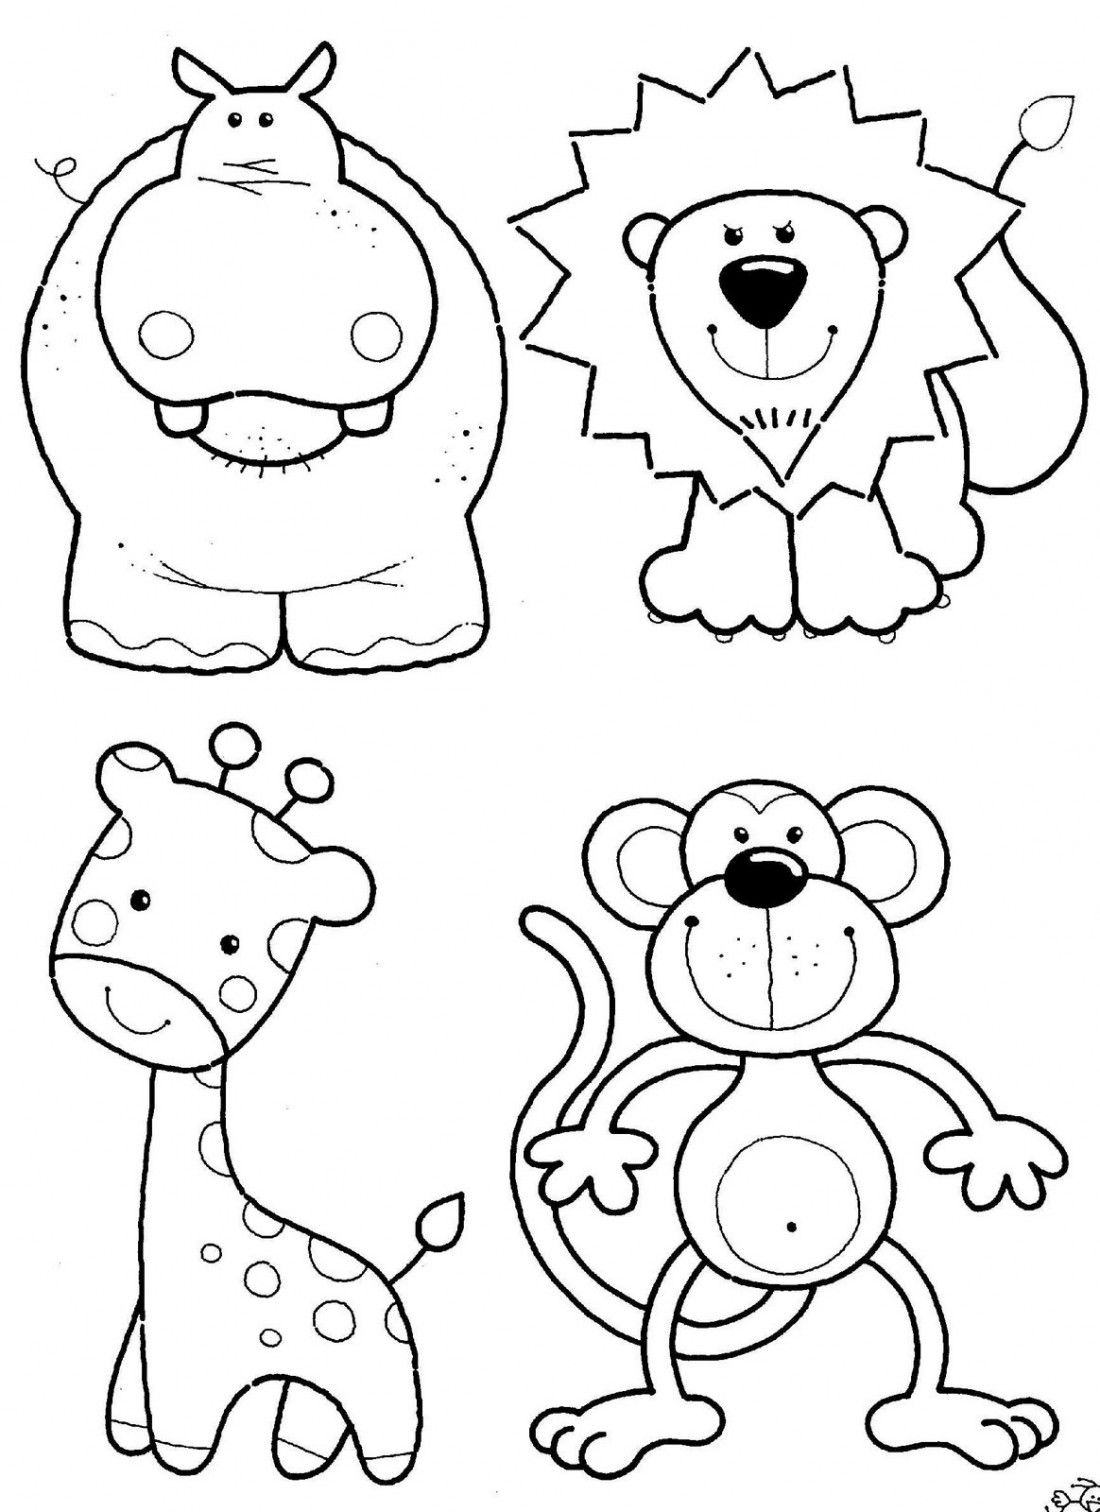 find this pin and more on teaching materials for kids zoo animals coloring - Colouring Activities For Toddlers